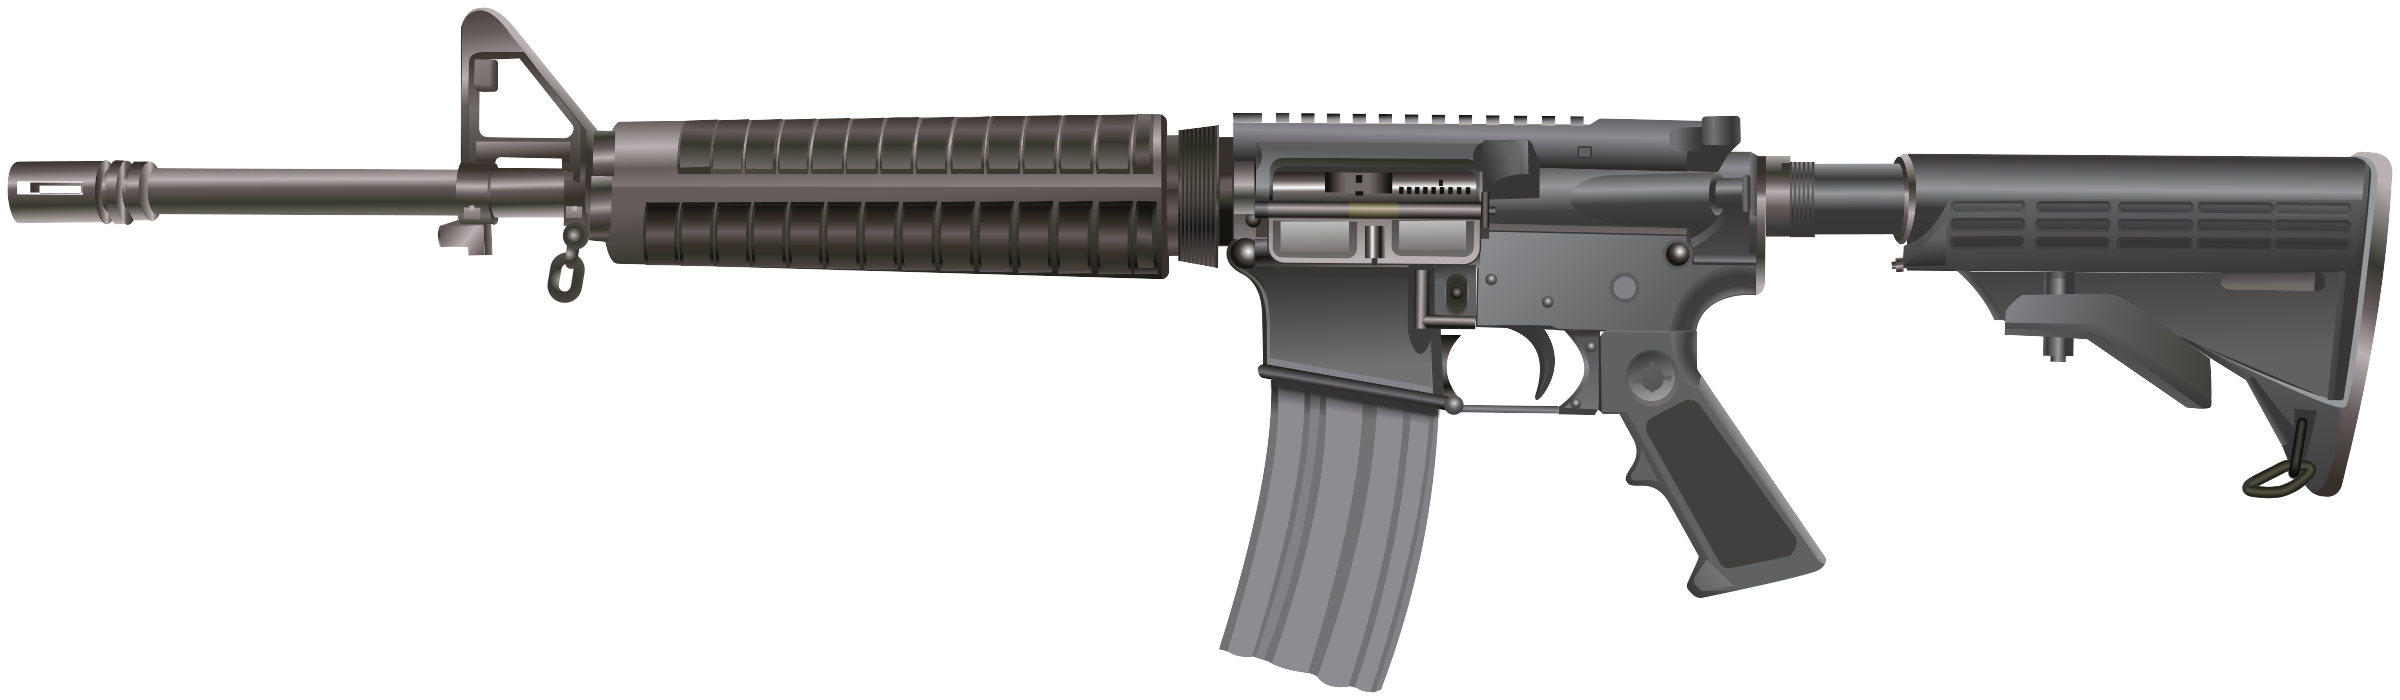 rifle svg transparent